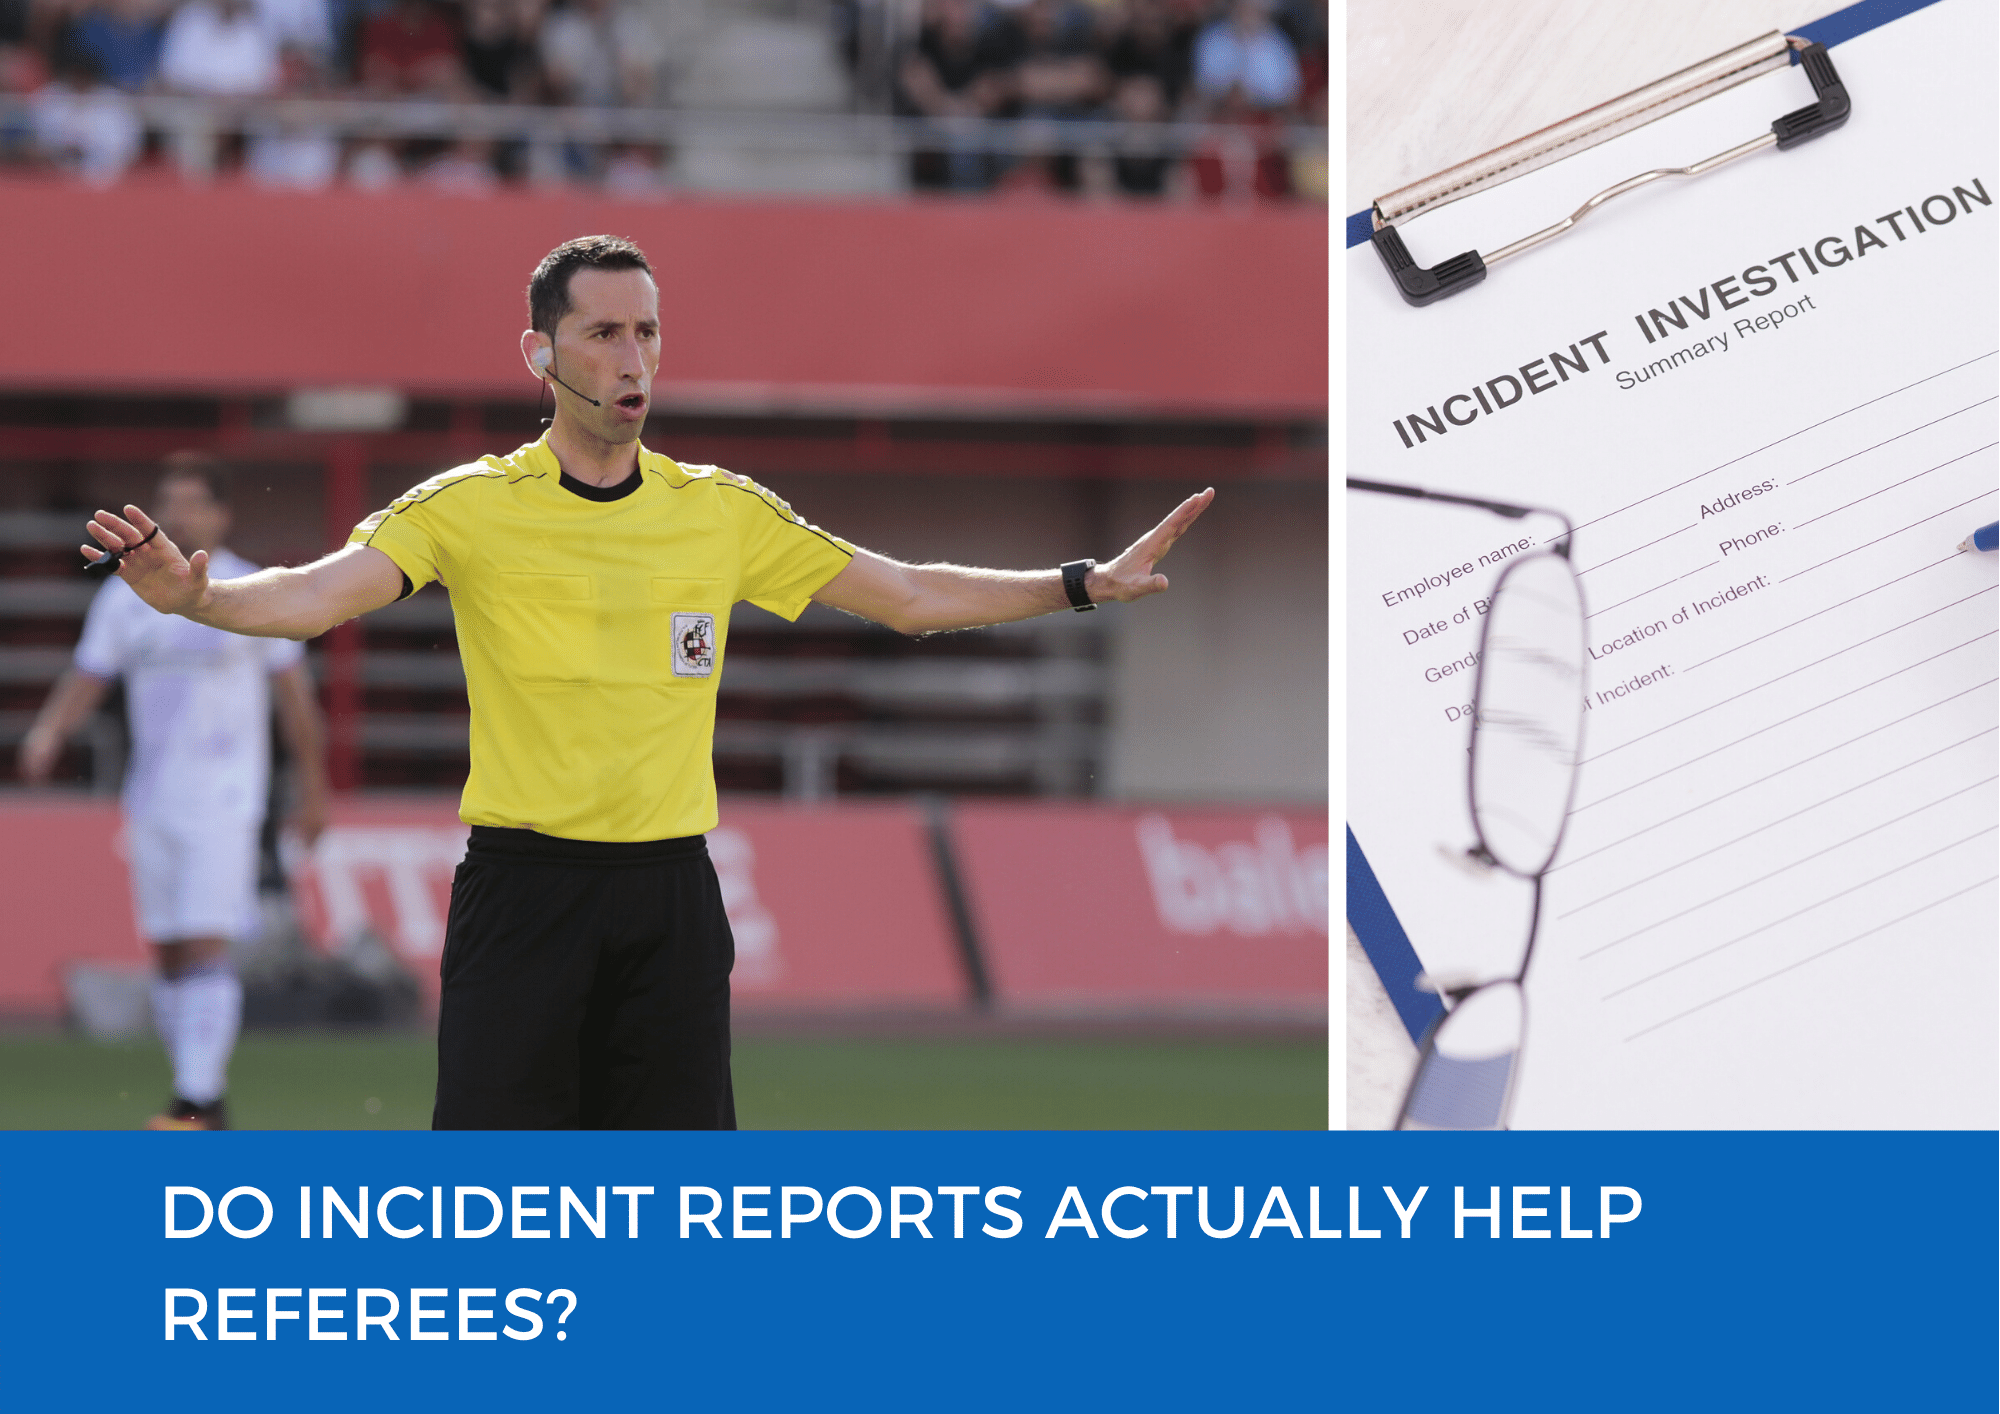 Do Incident Reports Actually Help Referees?